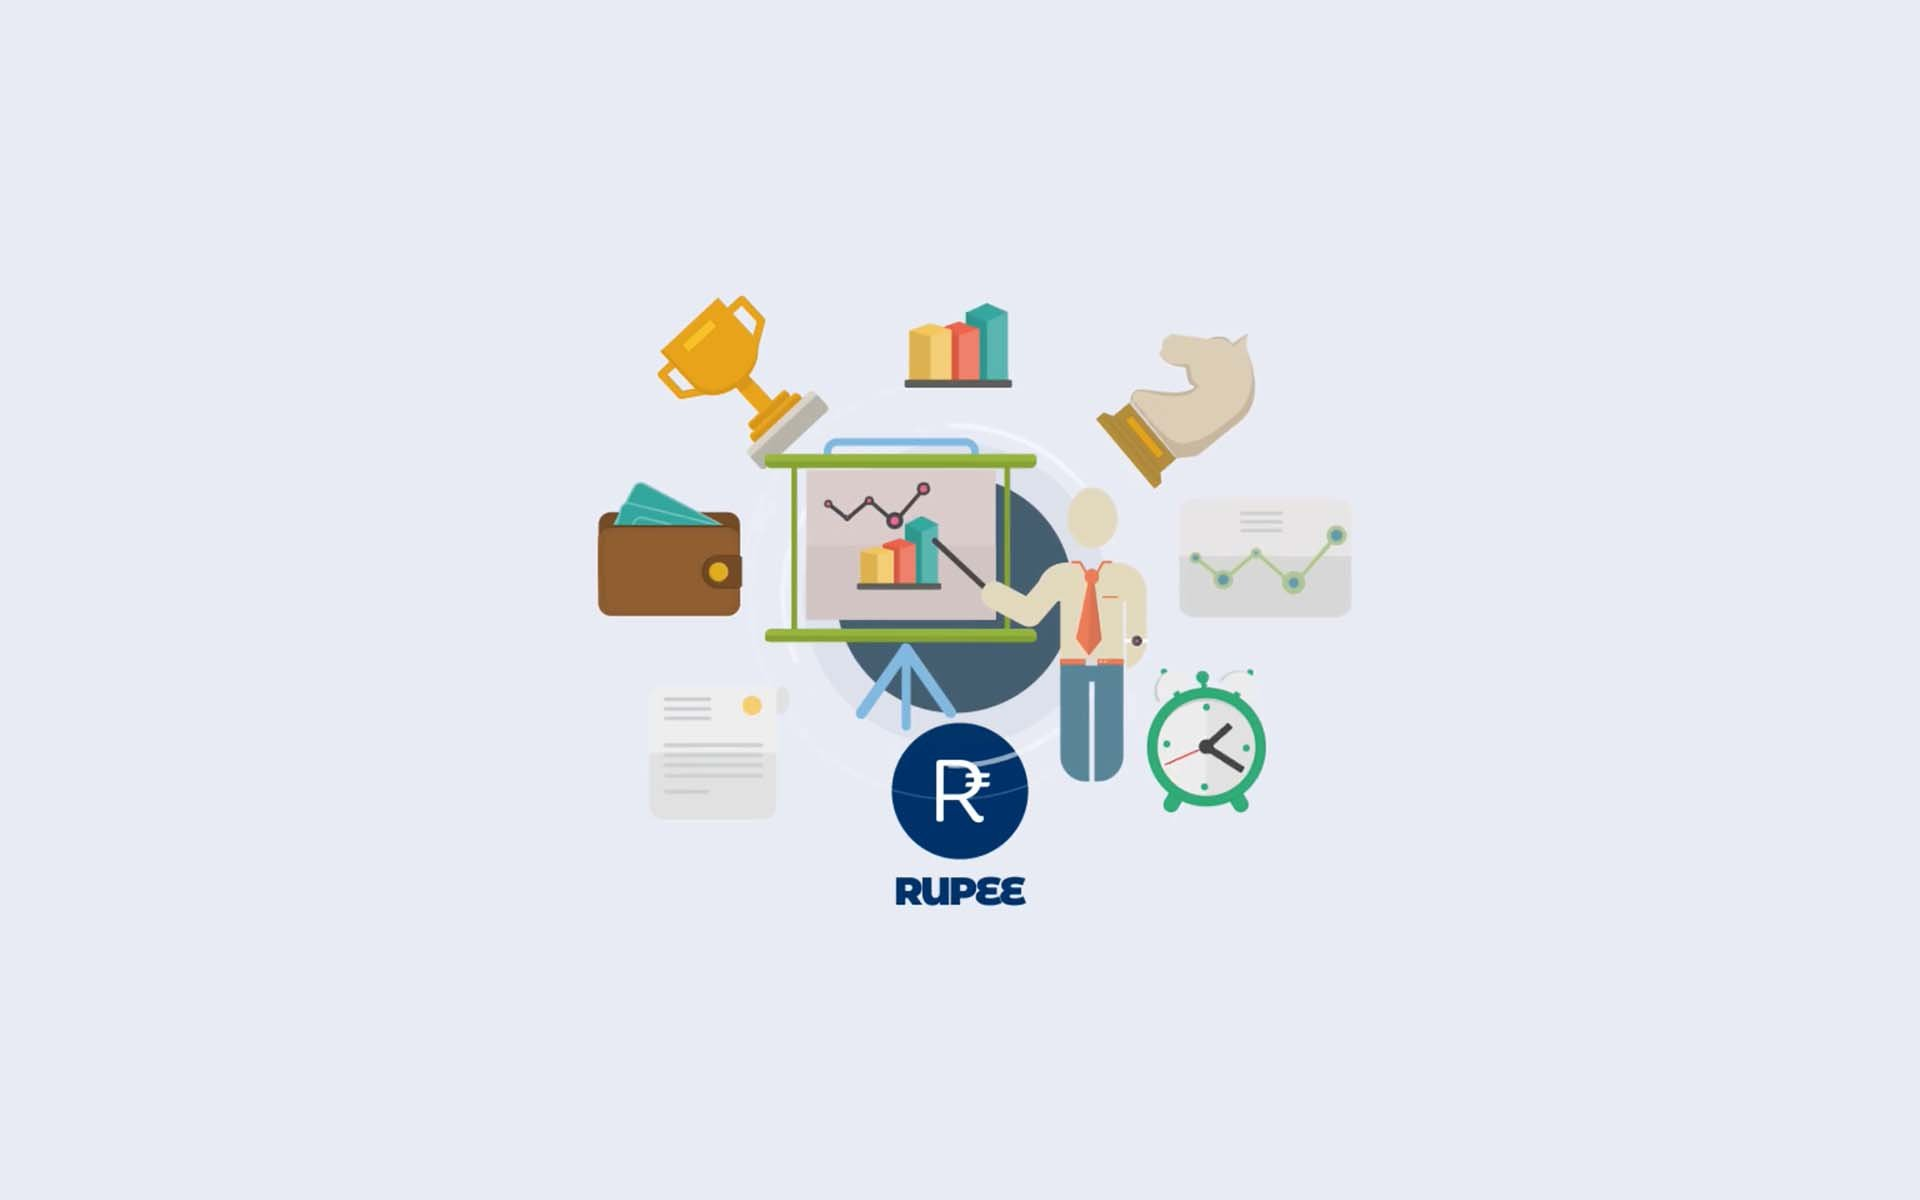 The Rupee Coin Utilizes Blockchain Technology and Will Become The Cryptocurrency of Choice In India And South Asia